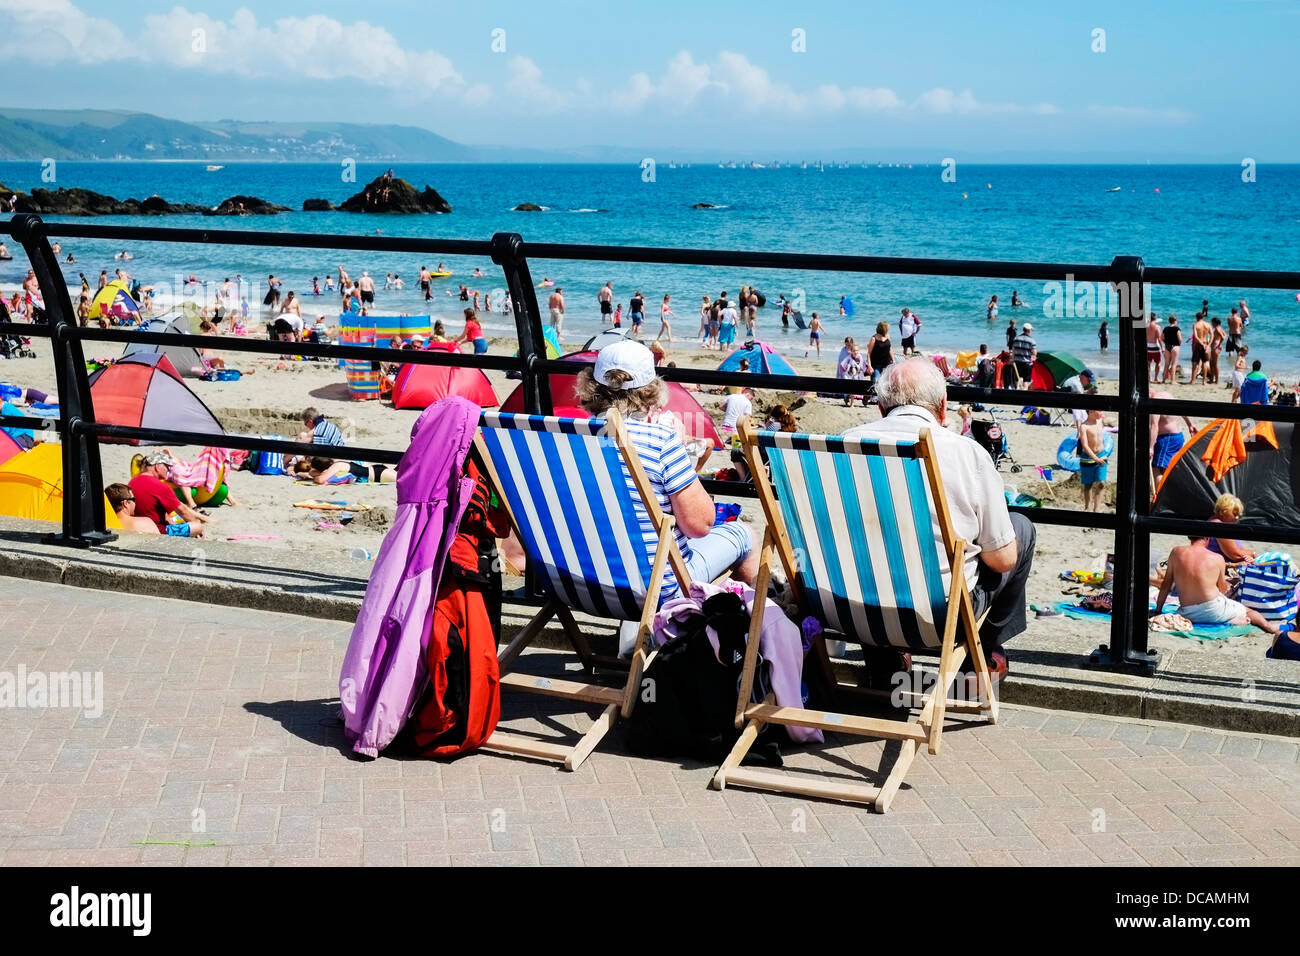 Looe in Cornwall - Holidaymakers sitting in deckchairs overlooking a busy and crowded East Looe Beach Cornwall UK - Stock Image